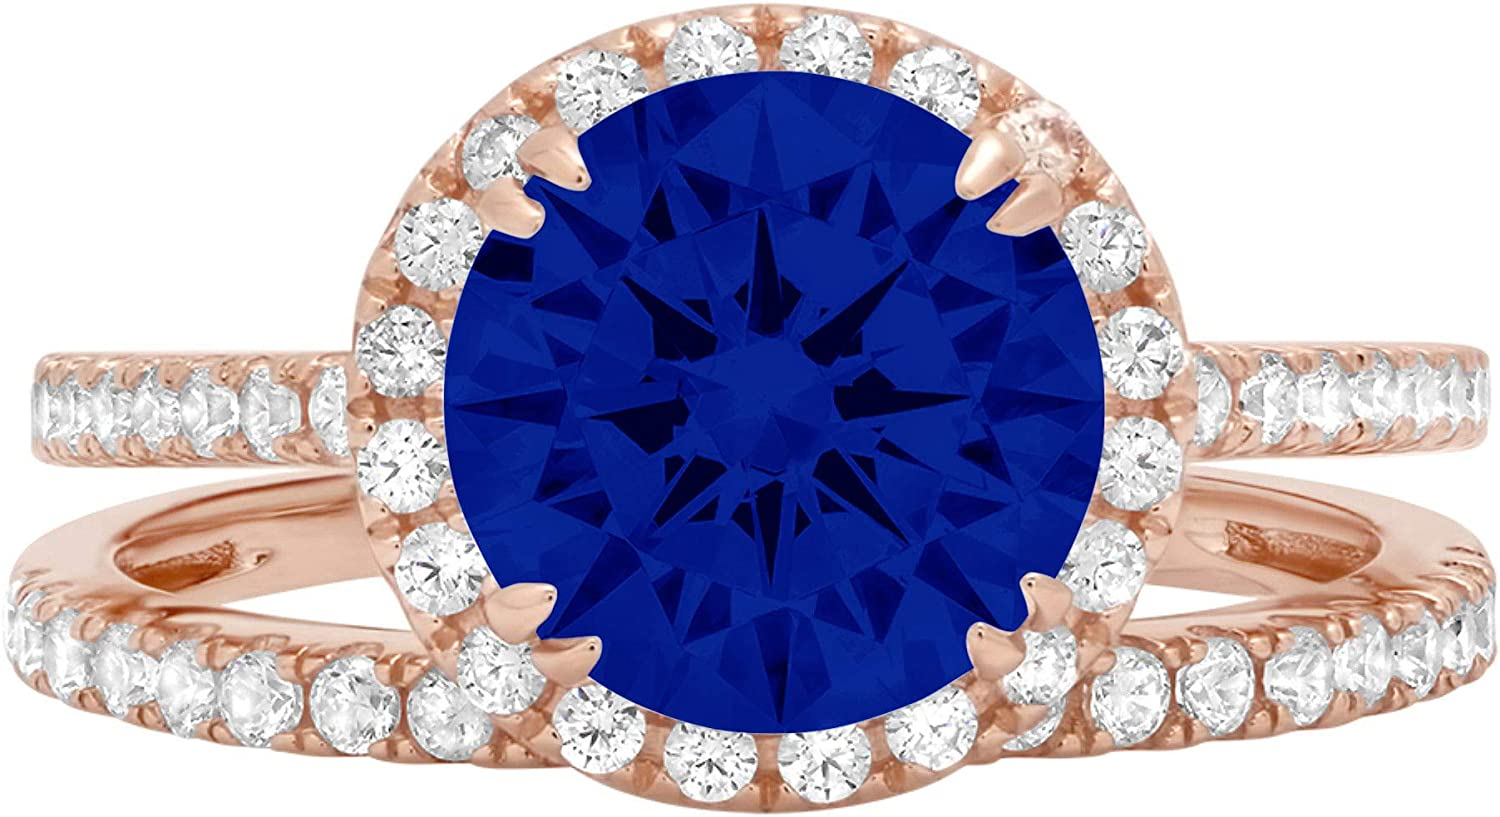 2.66ct Round Cut Halo Pave Solitaire with Accent Ideal Flawless Simulated CZ Blue Sapphire Engagement Promise Designer Anniversary Wedding Bridal ring band set 14k Rose Gold